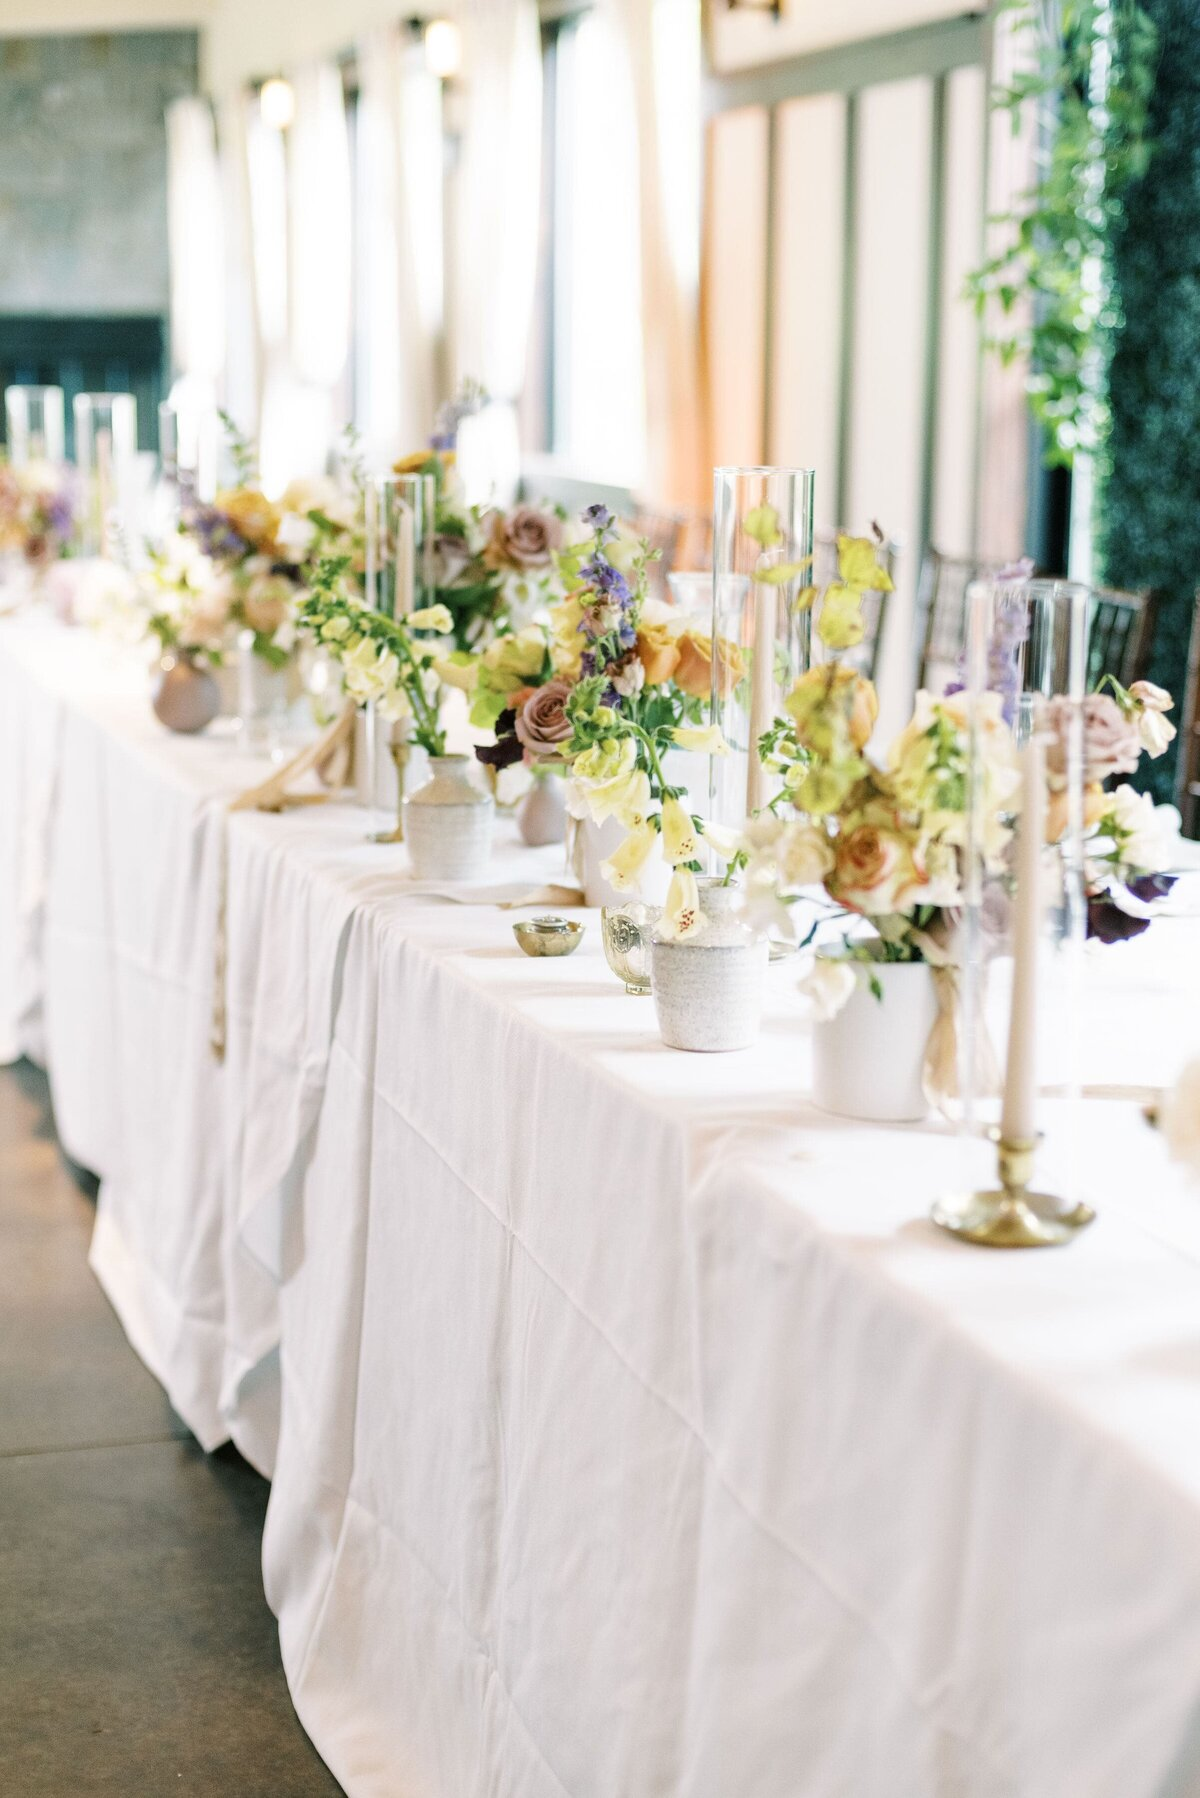 The Day's Design Northern Michigan Florist Head Table-min